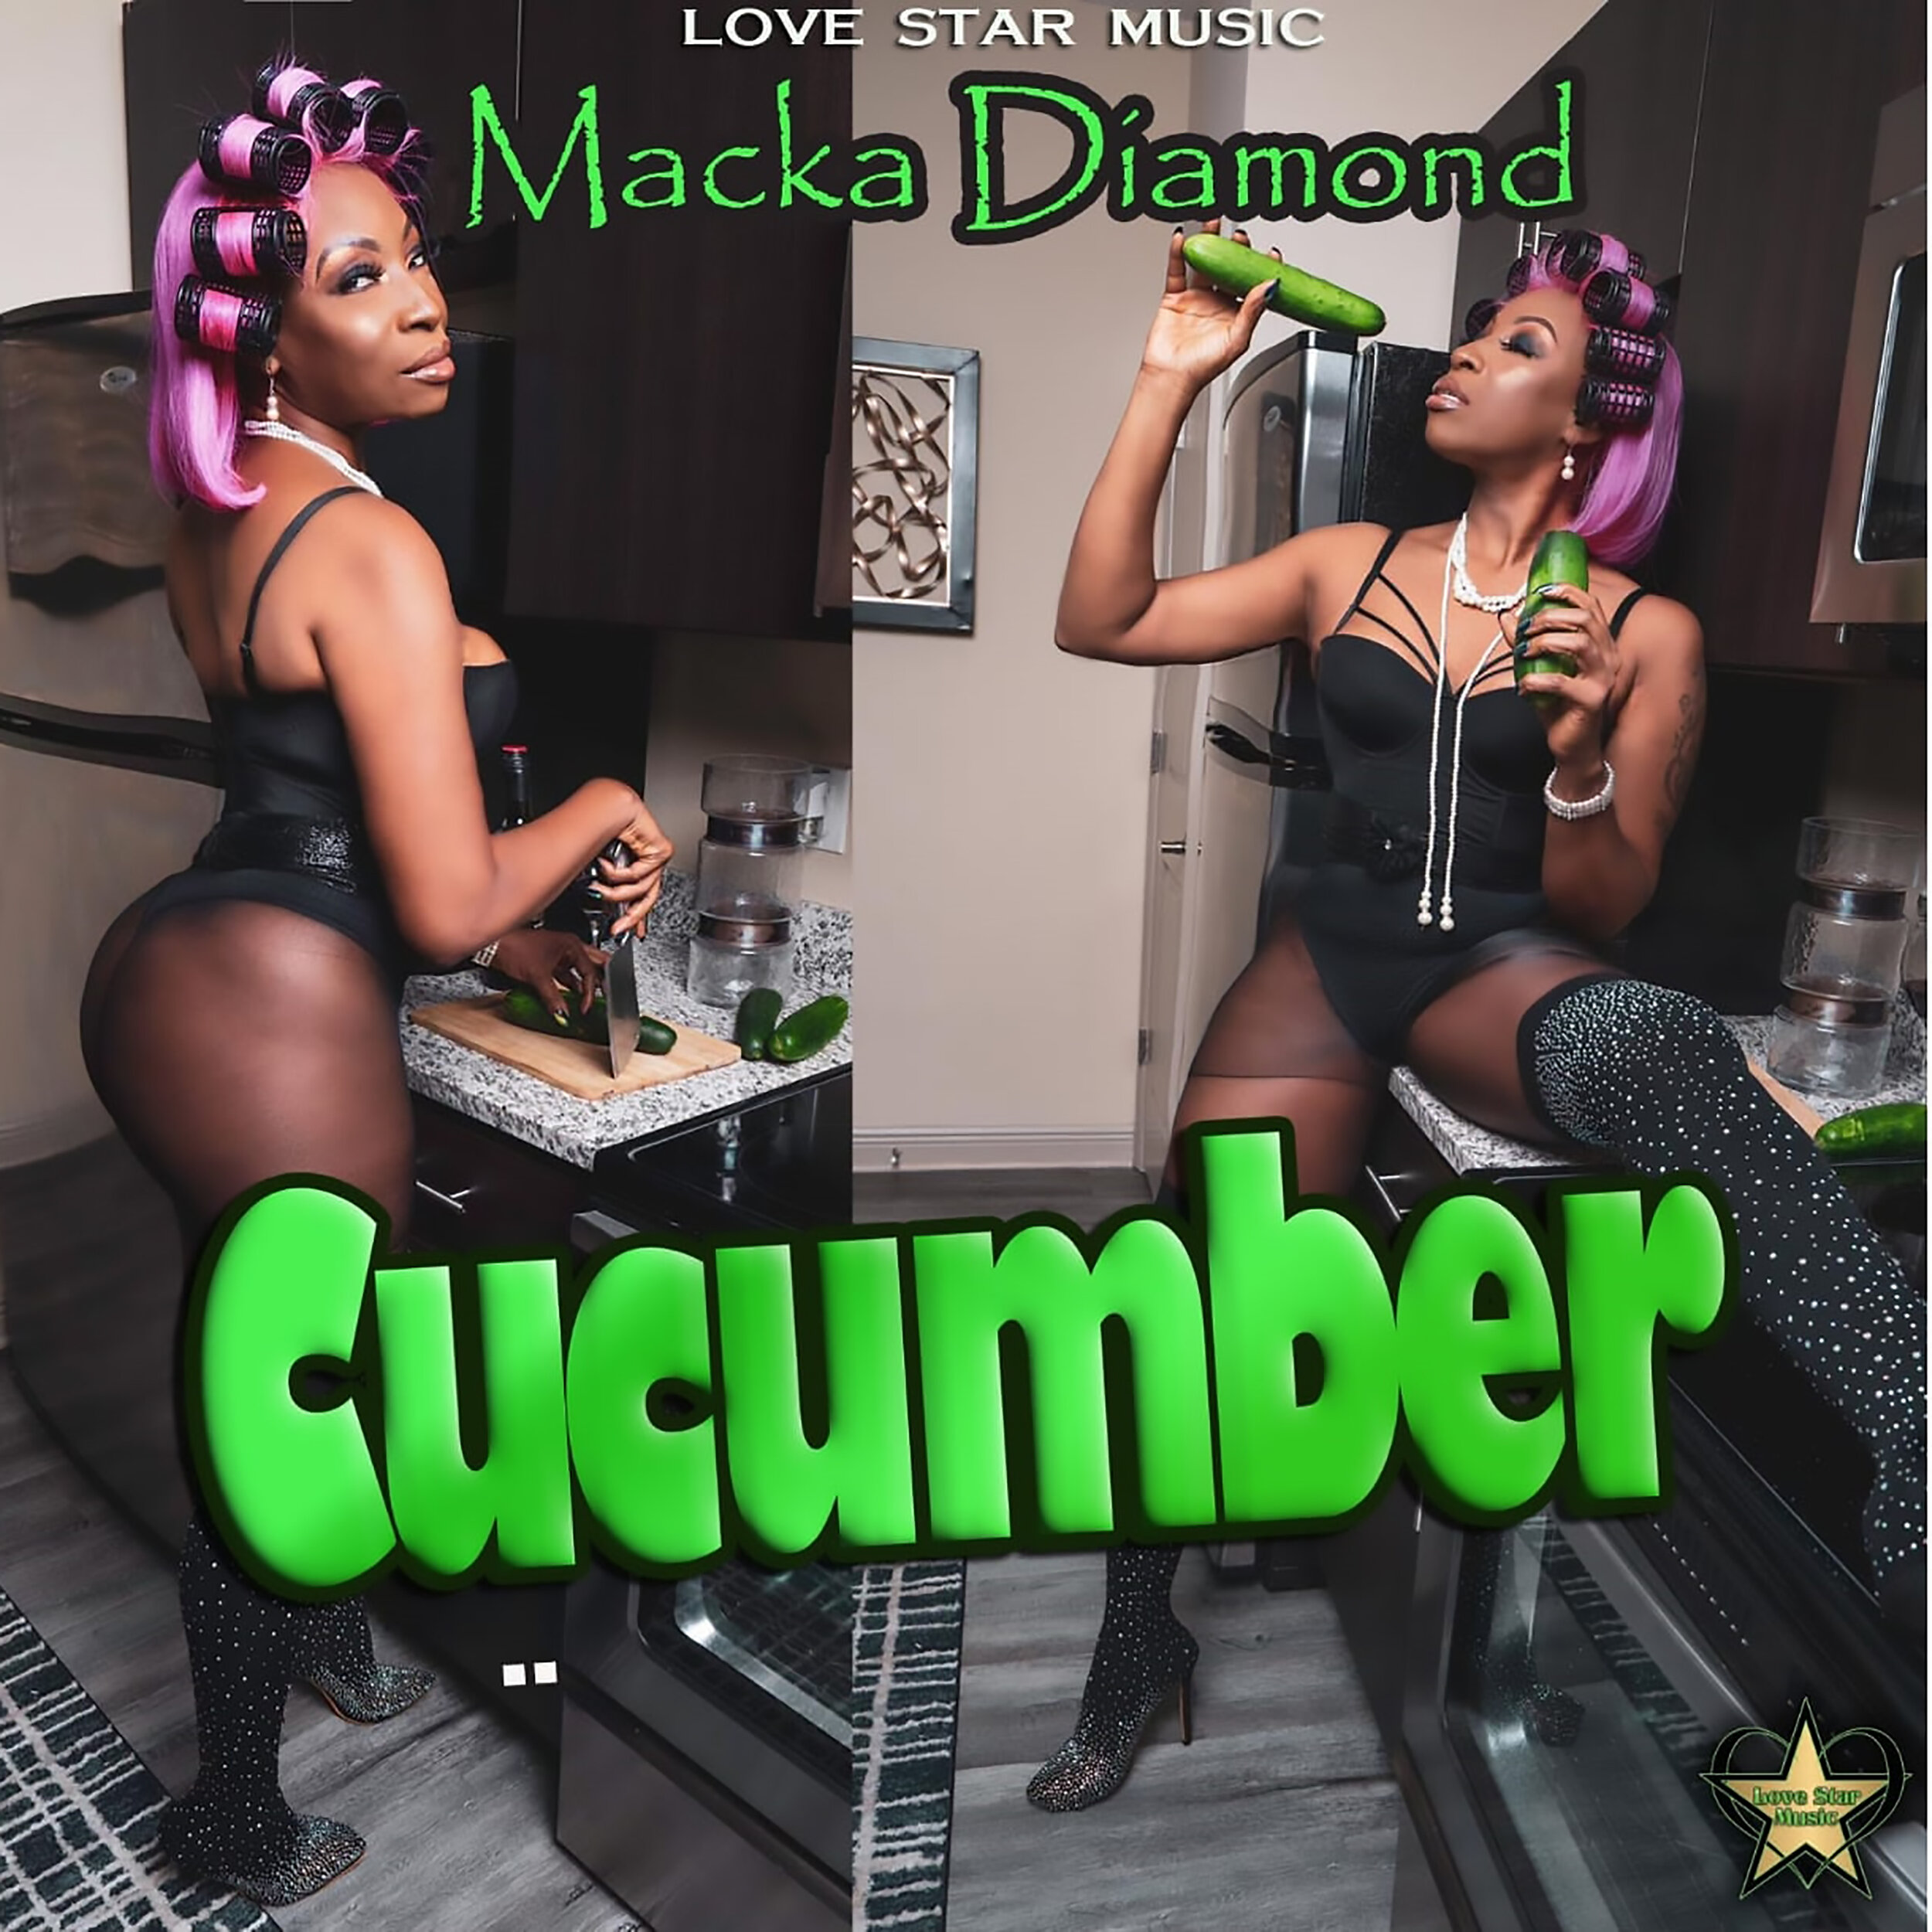 Macka Diamond - Cucumber Single Cover.jpg